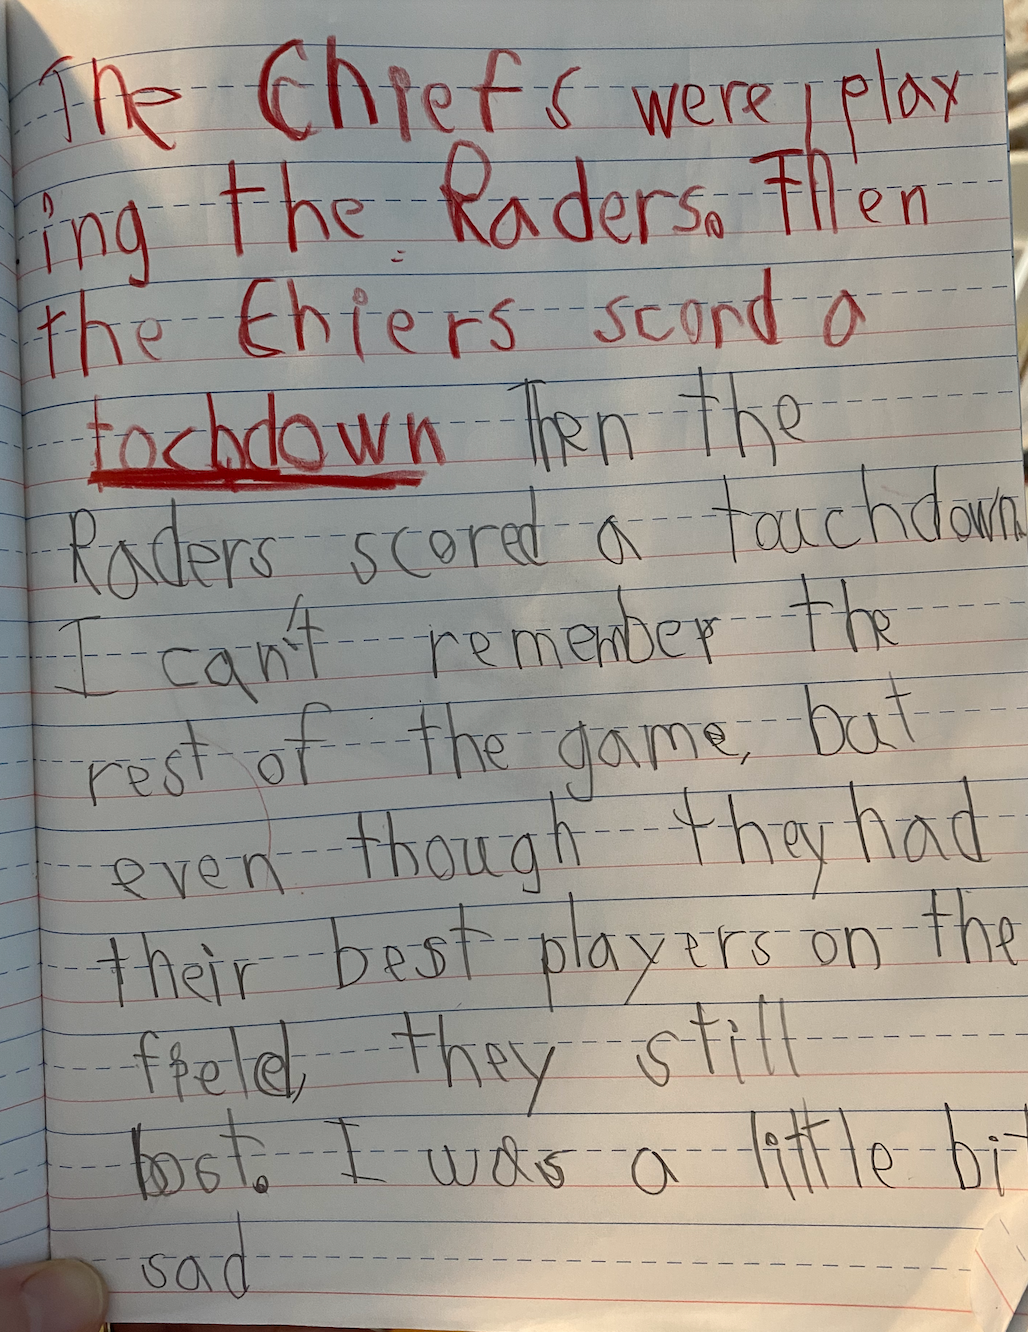 TRANSCRIPTION: The Chiefs were playing the Raiders. Then the Chiefs scored a touchdown. Then the Raiders scored a touchdown. I can't remember the rest of the game. But even though they had their best players on the field, they still lost. I was a little bit sad.